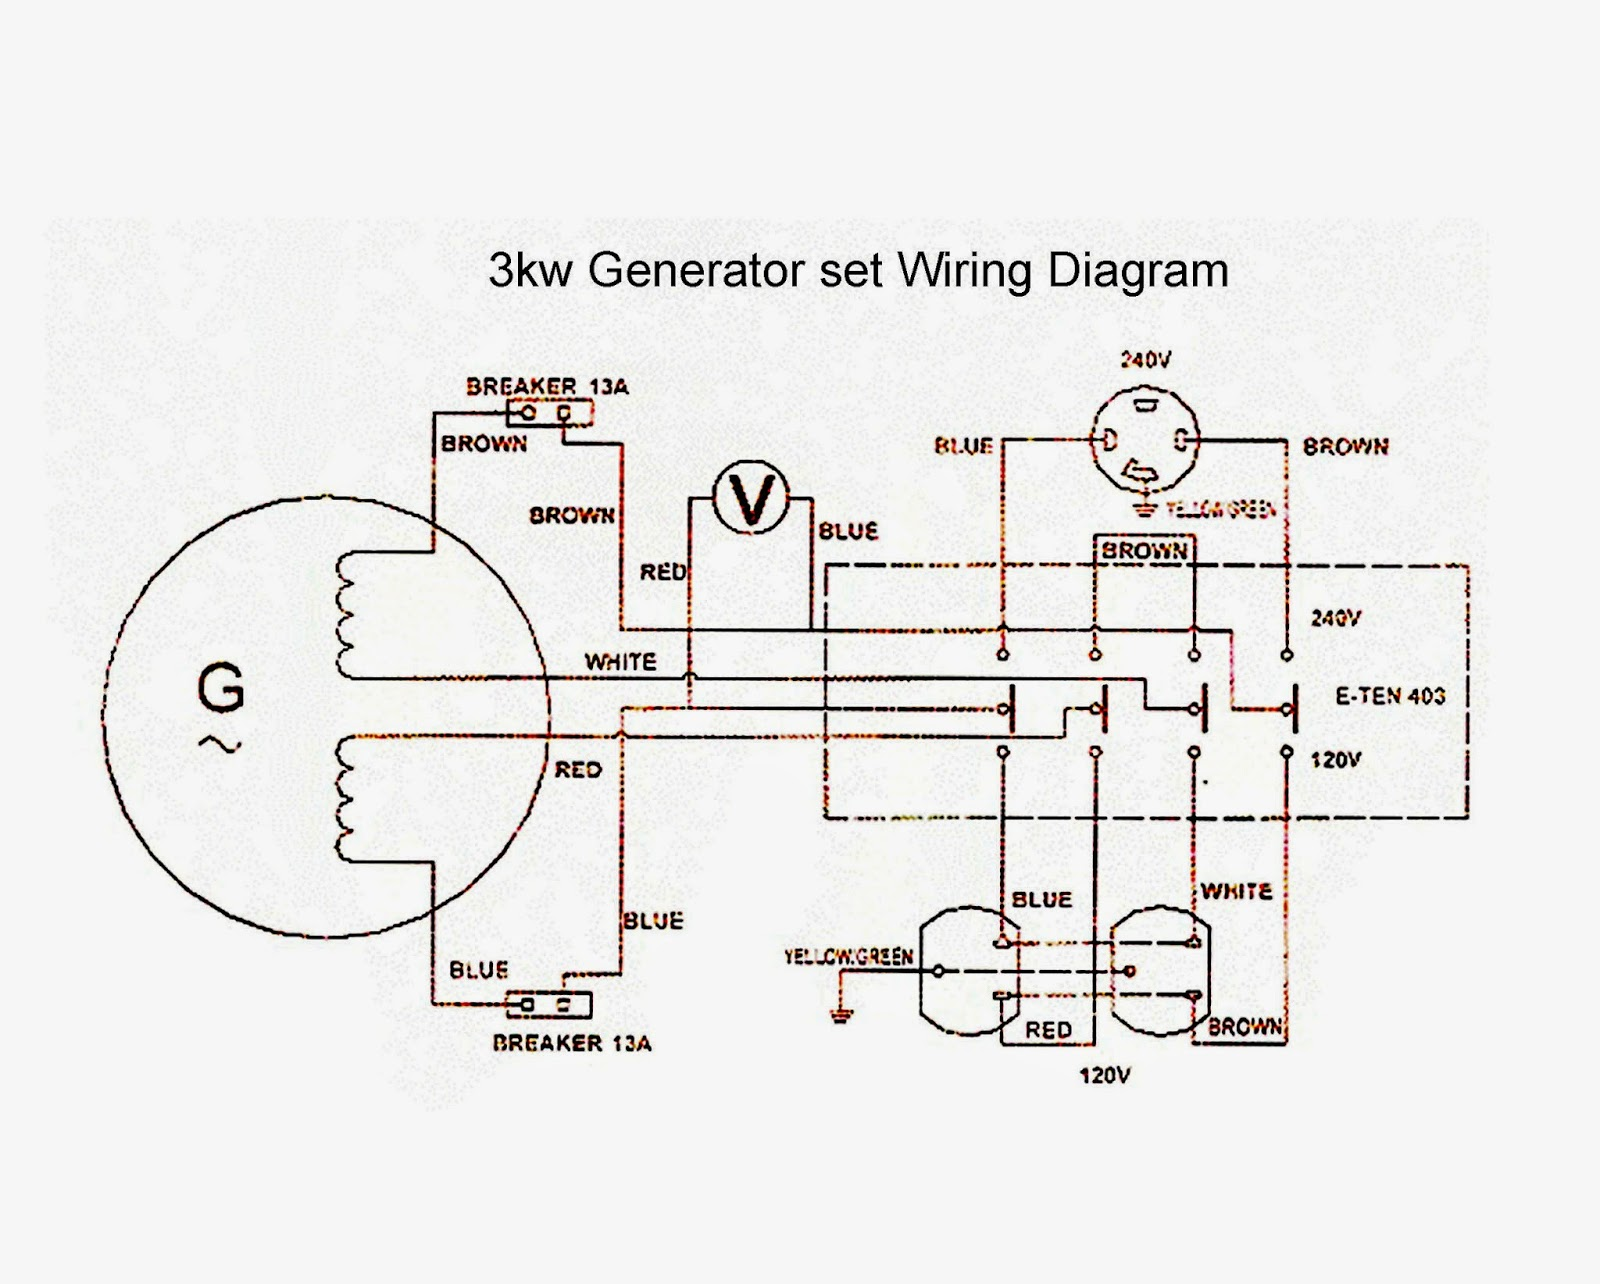 Generator Control Panel Wiring Diagram Free Download Vacuum Switch Symbol Schematic Electrical Data 10 Hp Diagrams